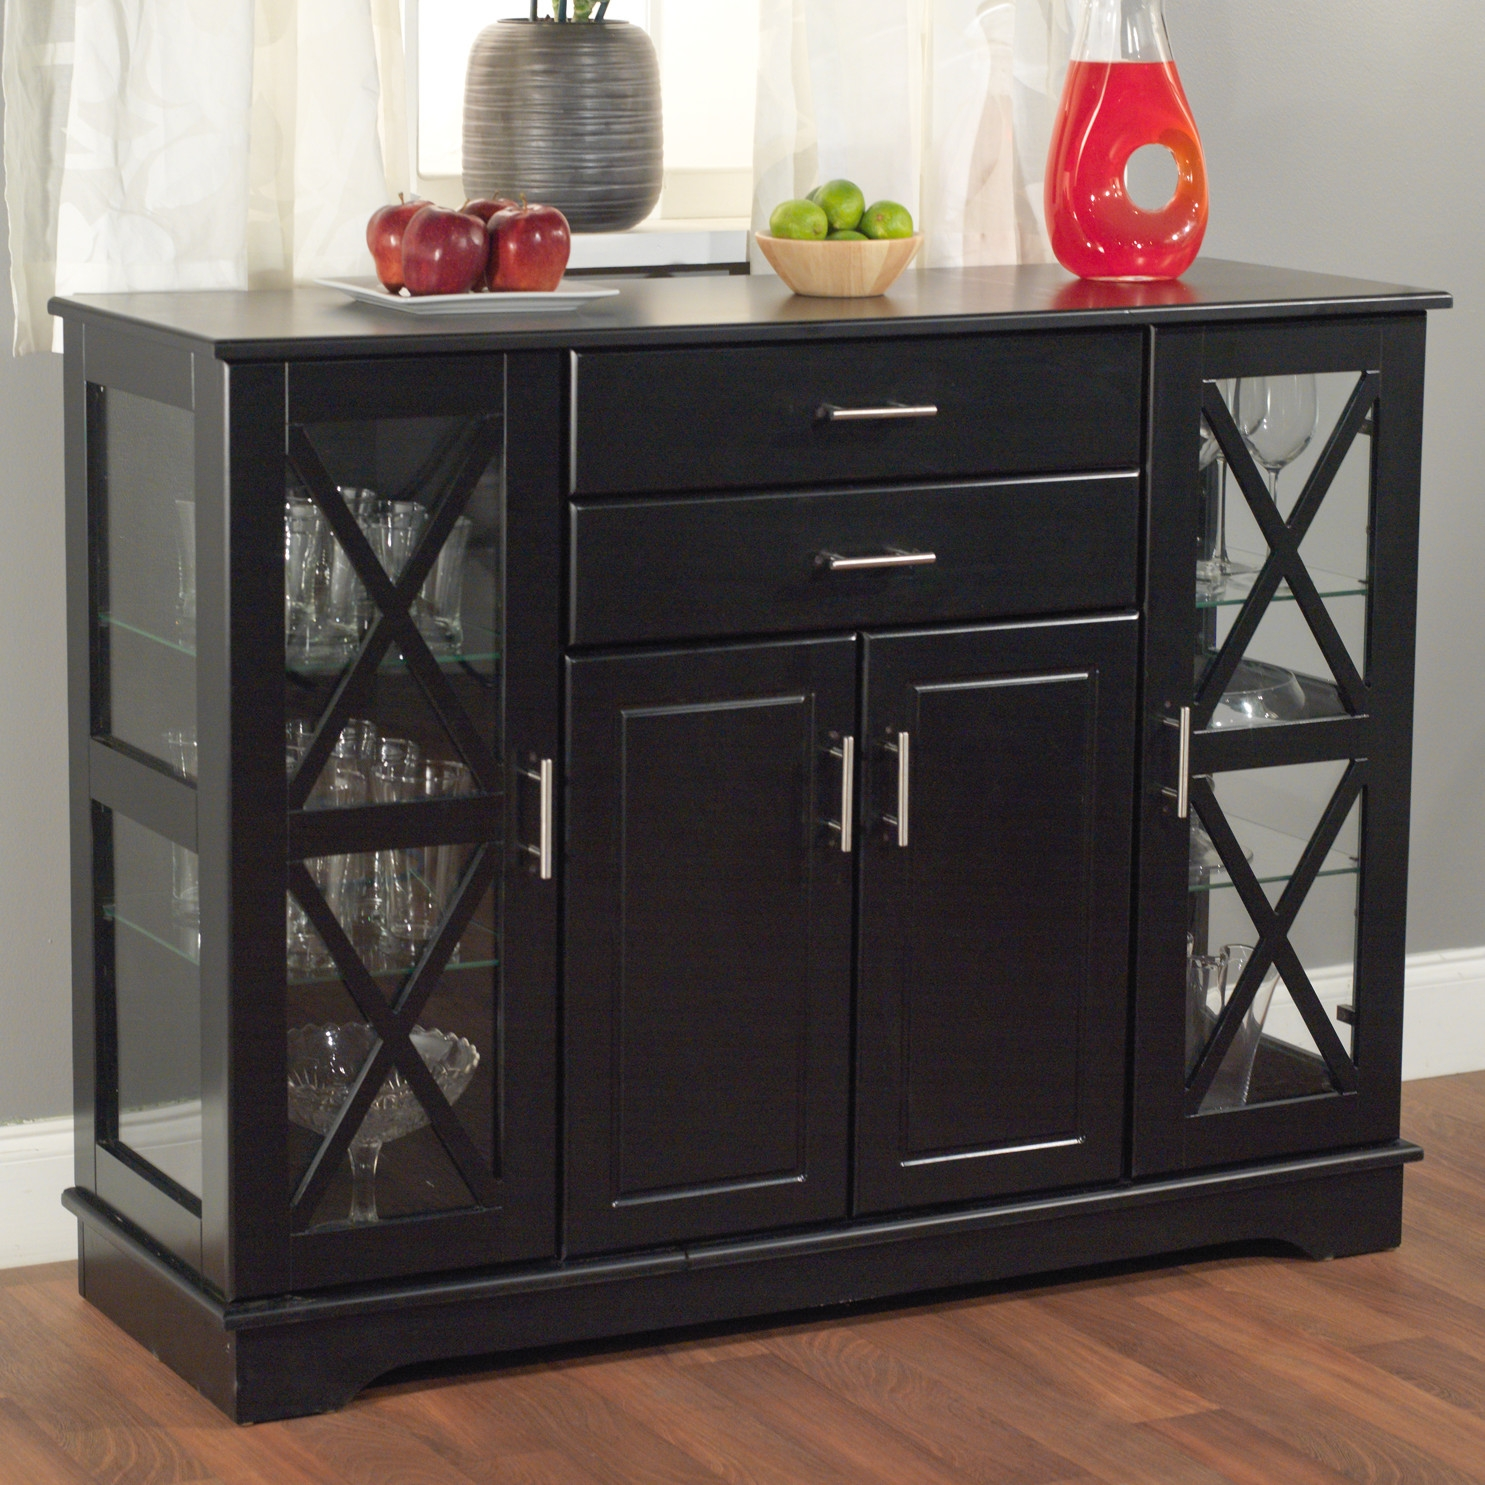 Dining Room Furniture Buffet Black Buffets For Dining Room Home Design Ideas